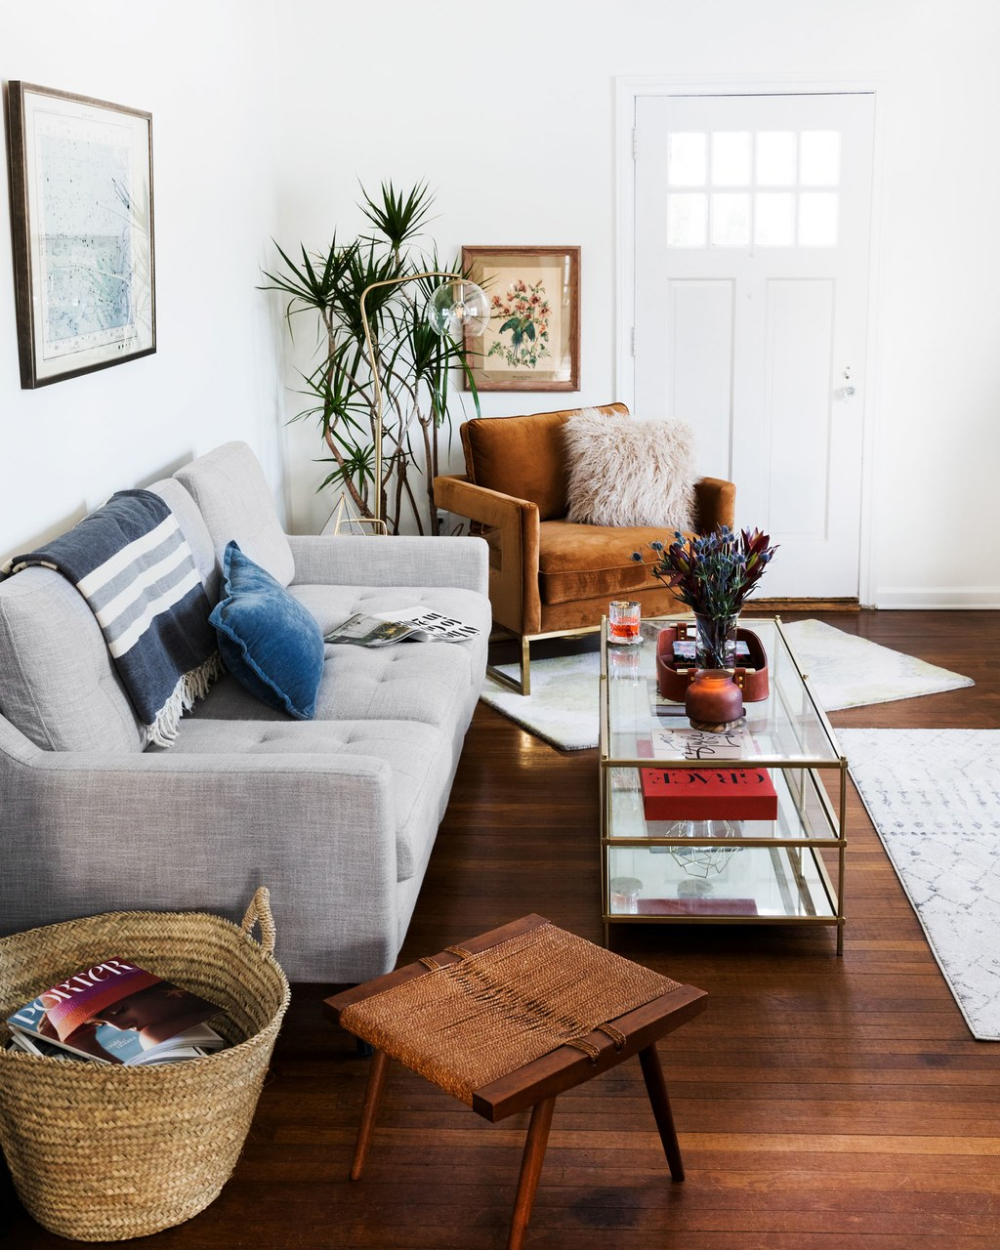 14 Unexpected Ways To Upgrade Your Living Room In 2020: We Reno'd A 900-Square-Foot House To Feel Way Roomier (and Succeeded!) In 2020